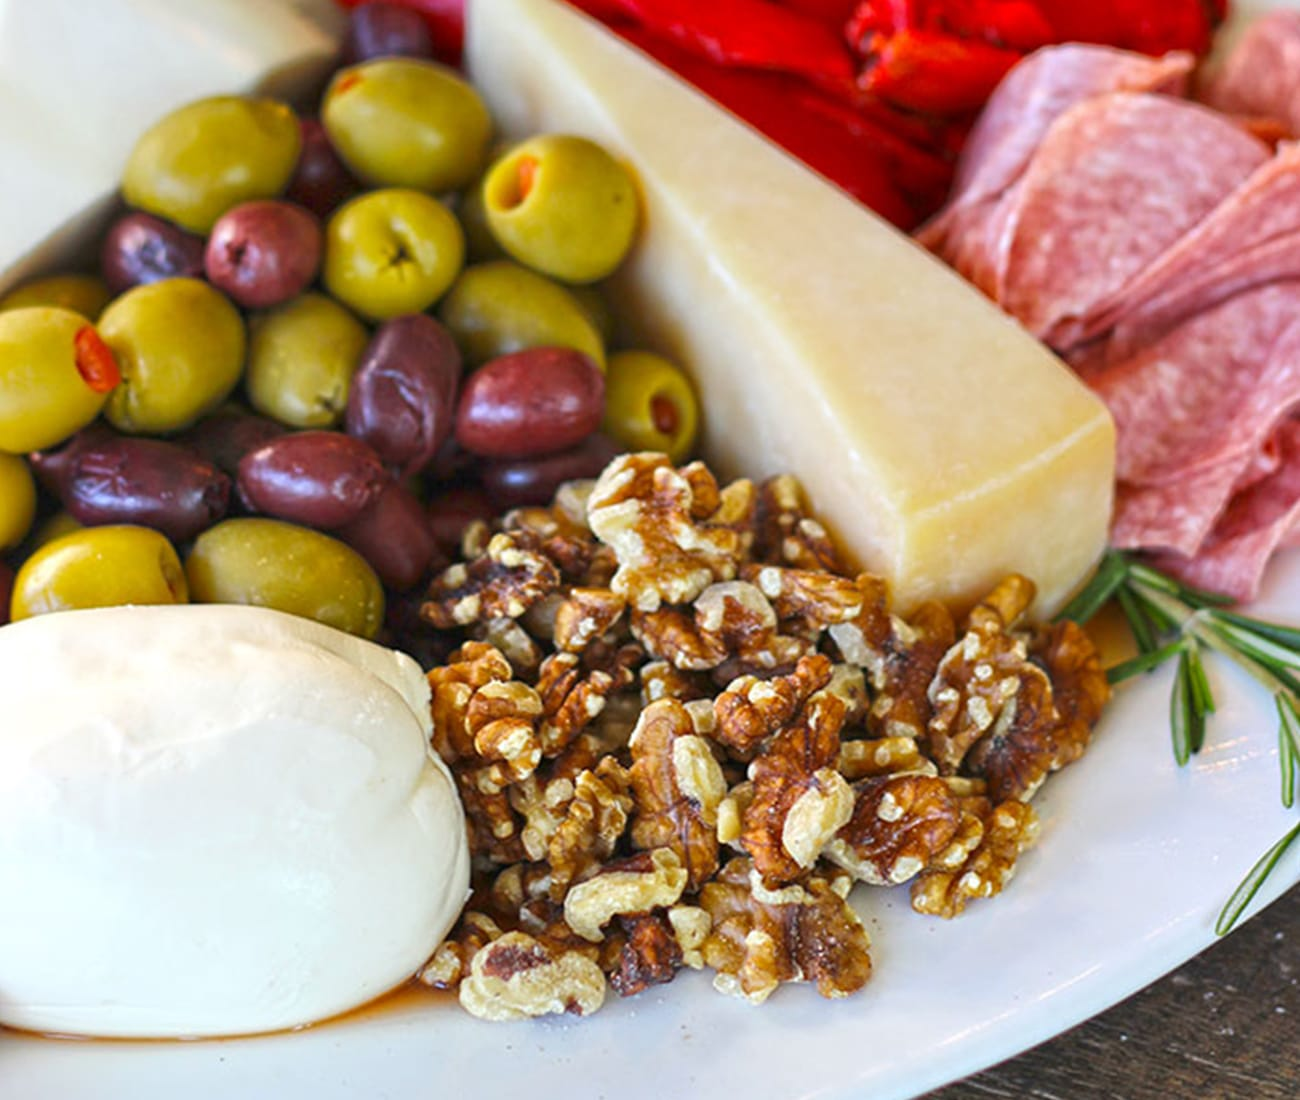 Image for Antipasto Platter